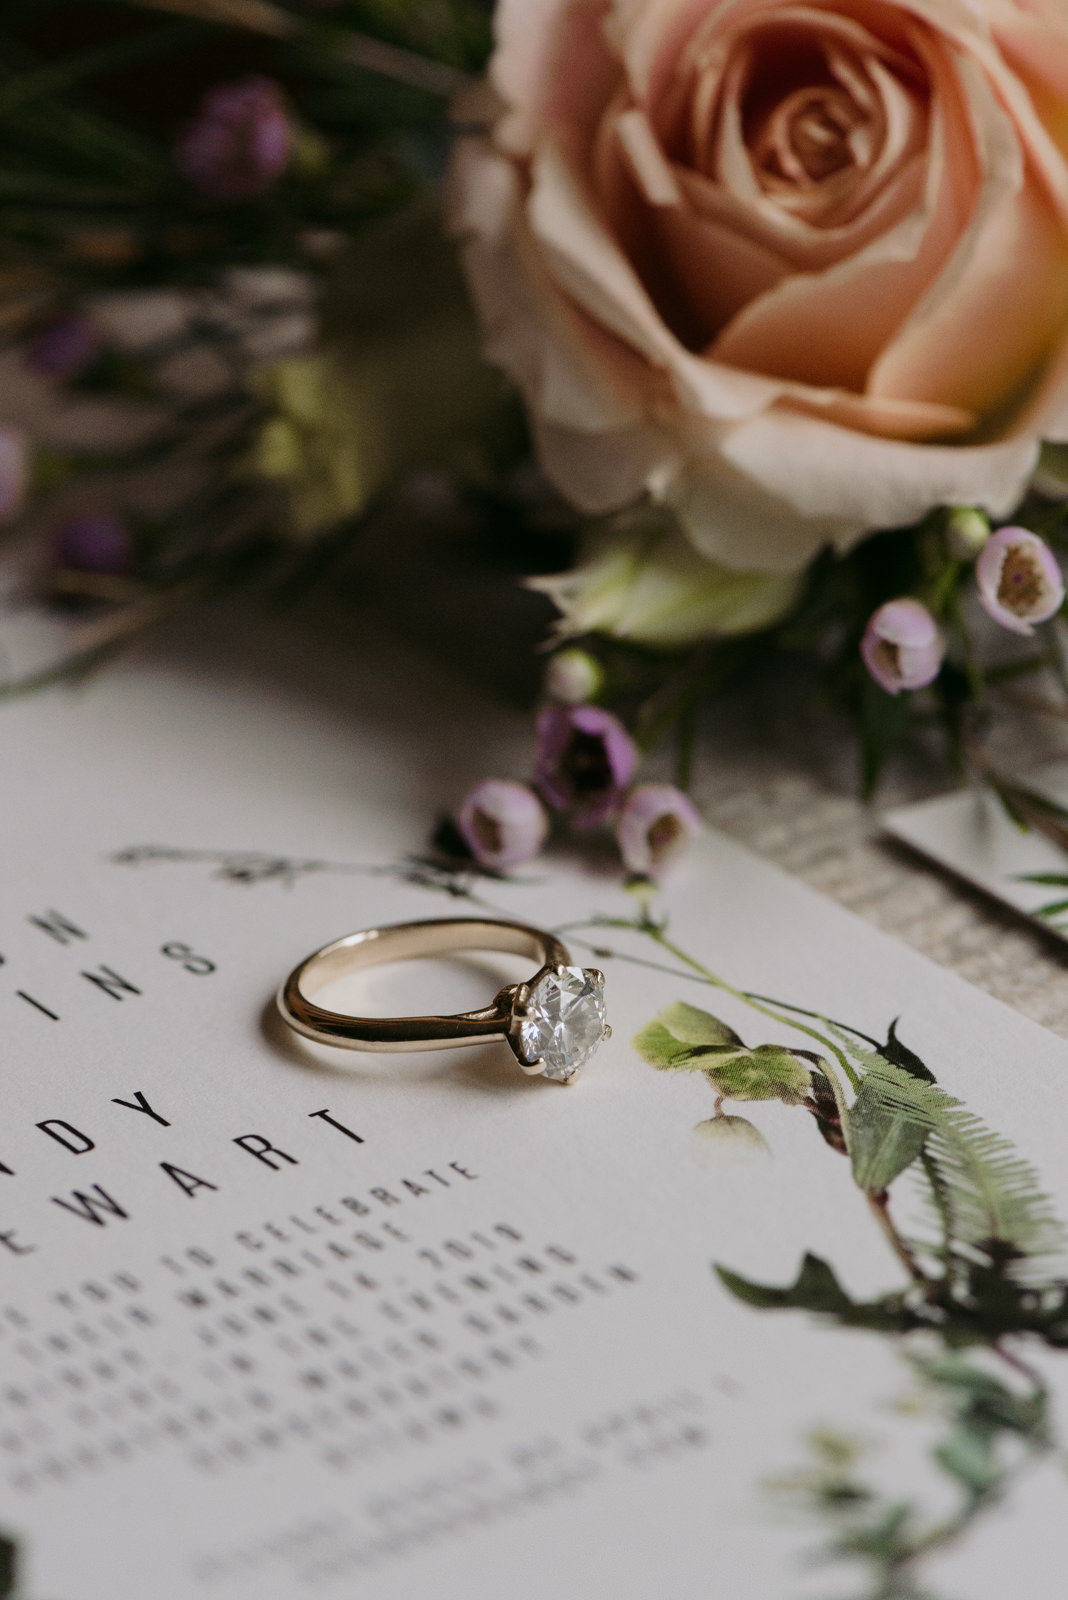 diamond engagement ring on wedding invitation with flowers